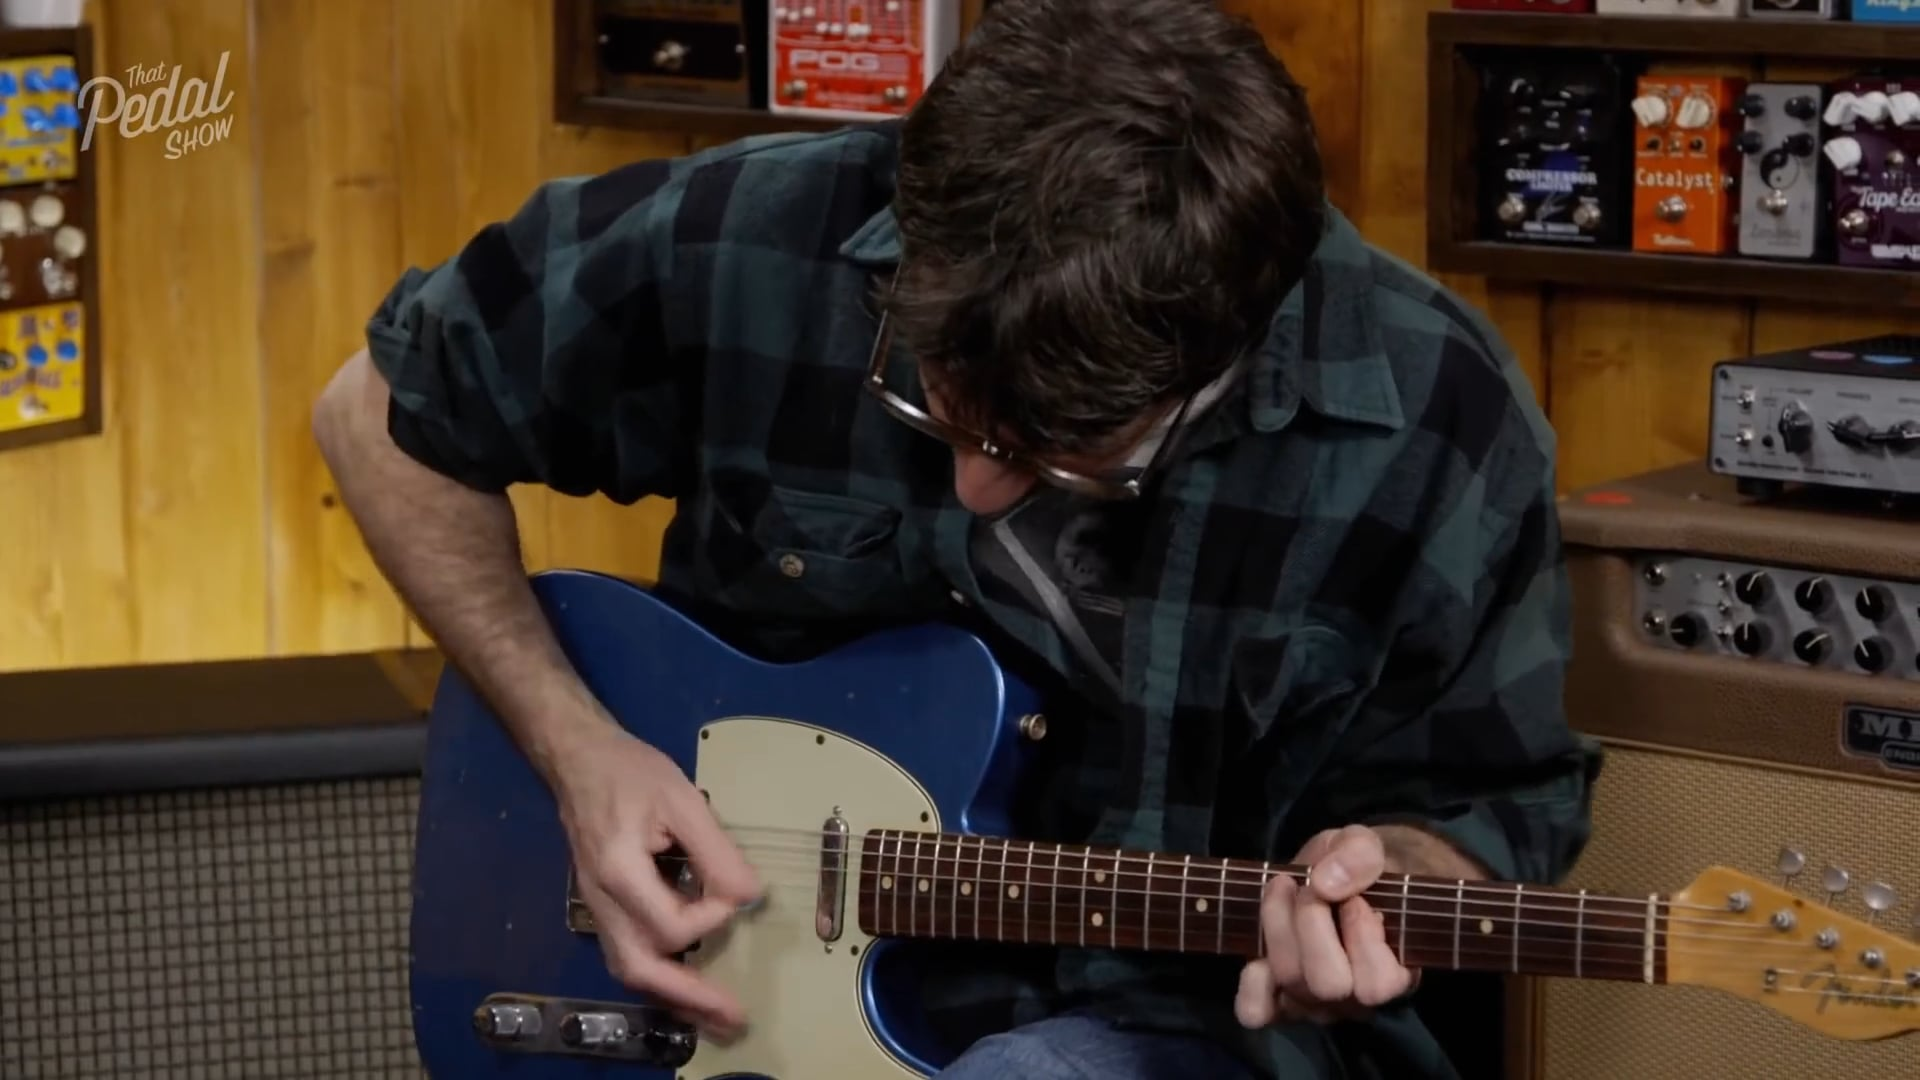 That Pedal Show – Graham Coxon On Life, Music, Gear & Inspiration